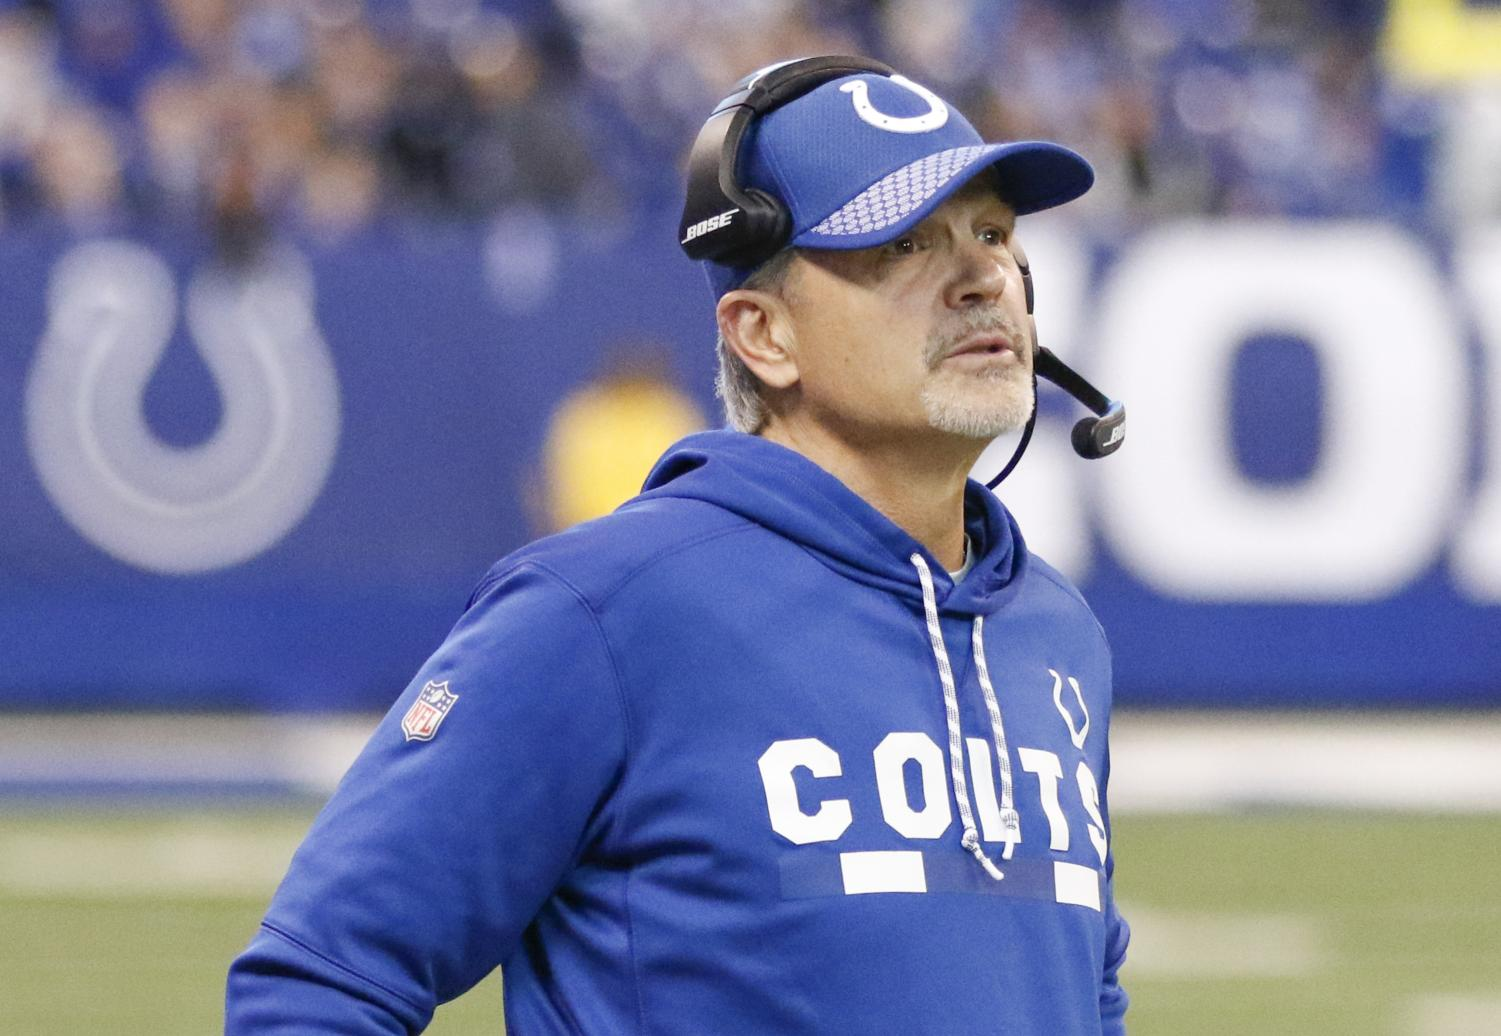 Indianapolis Colts head coach Chuck Pagano watches the end of a 22-13 win against the Houston Texans at Lucas Oil Stadium in Indianapolis on Sunday, Dec. 31, 2017.